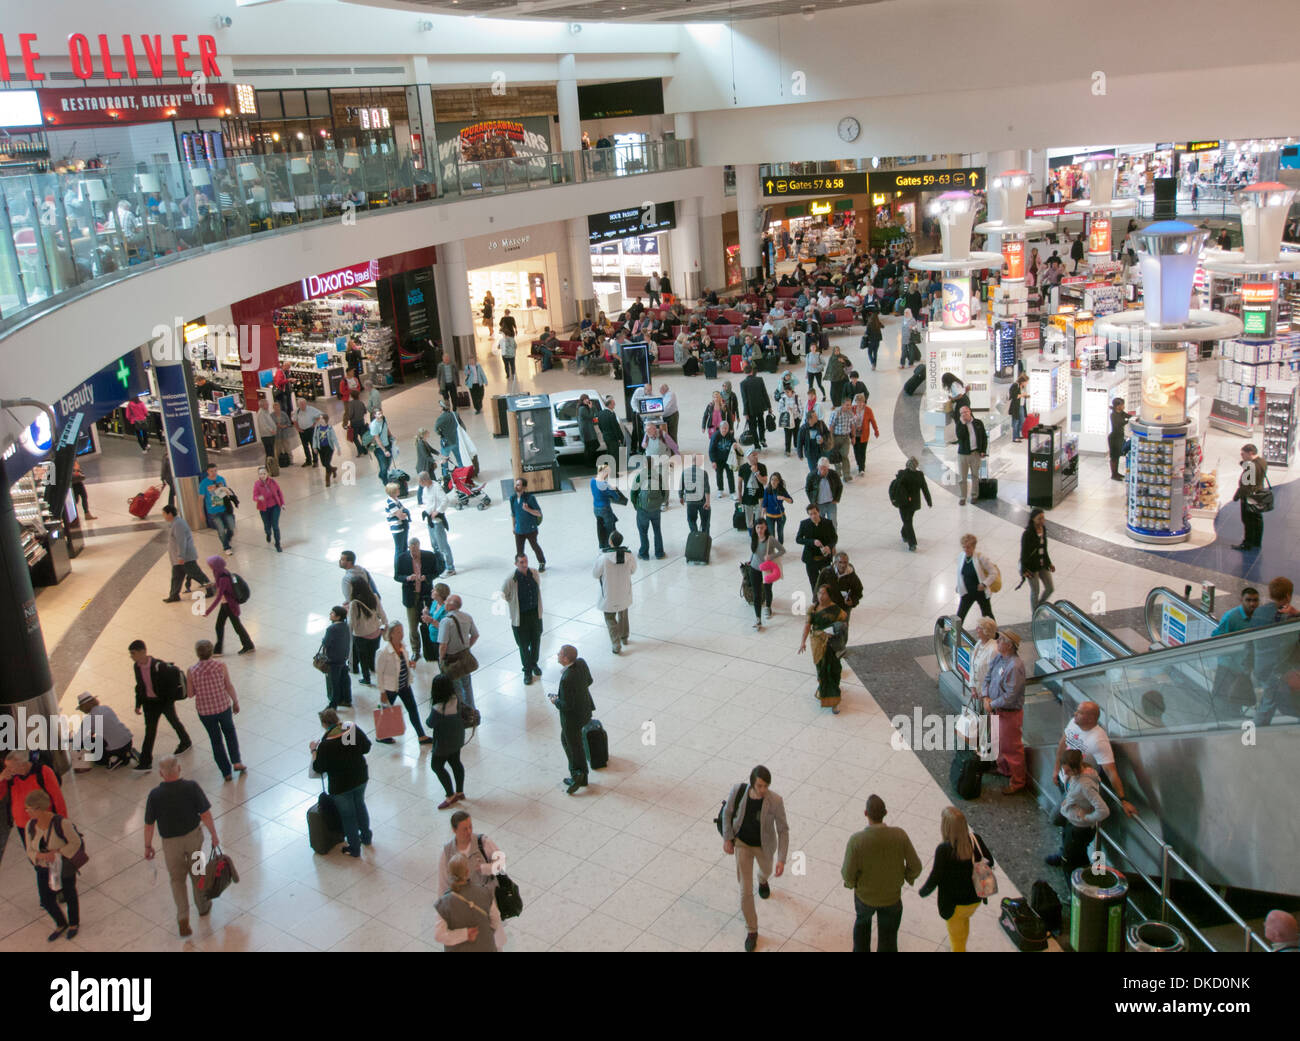 The main departure lounge and duty free area inside Gatwick Airport UK - Stock Image